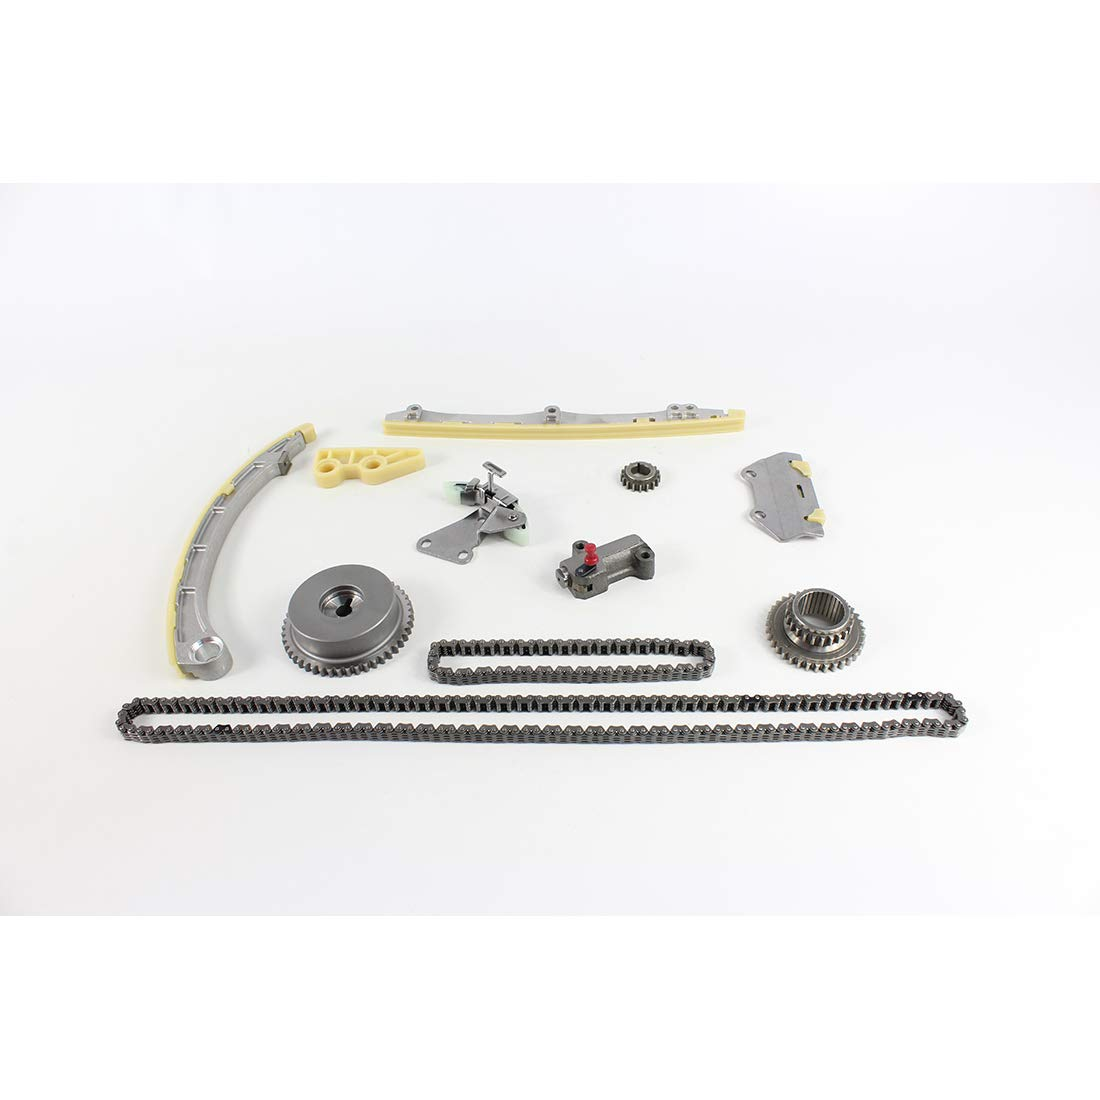 K20Z3 2.0L 16V DNJ TK236 Timing Chain Kit for 2006-2011 Honda//Civic L4 DOHC 122cid